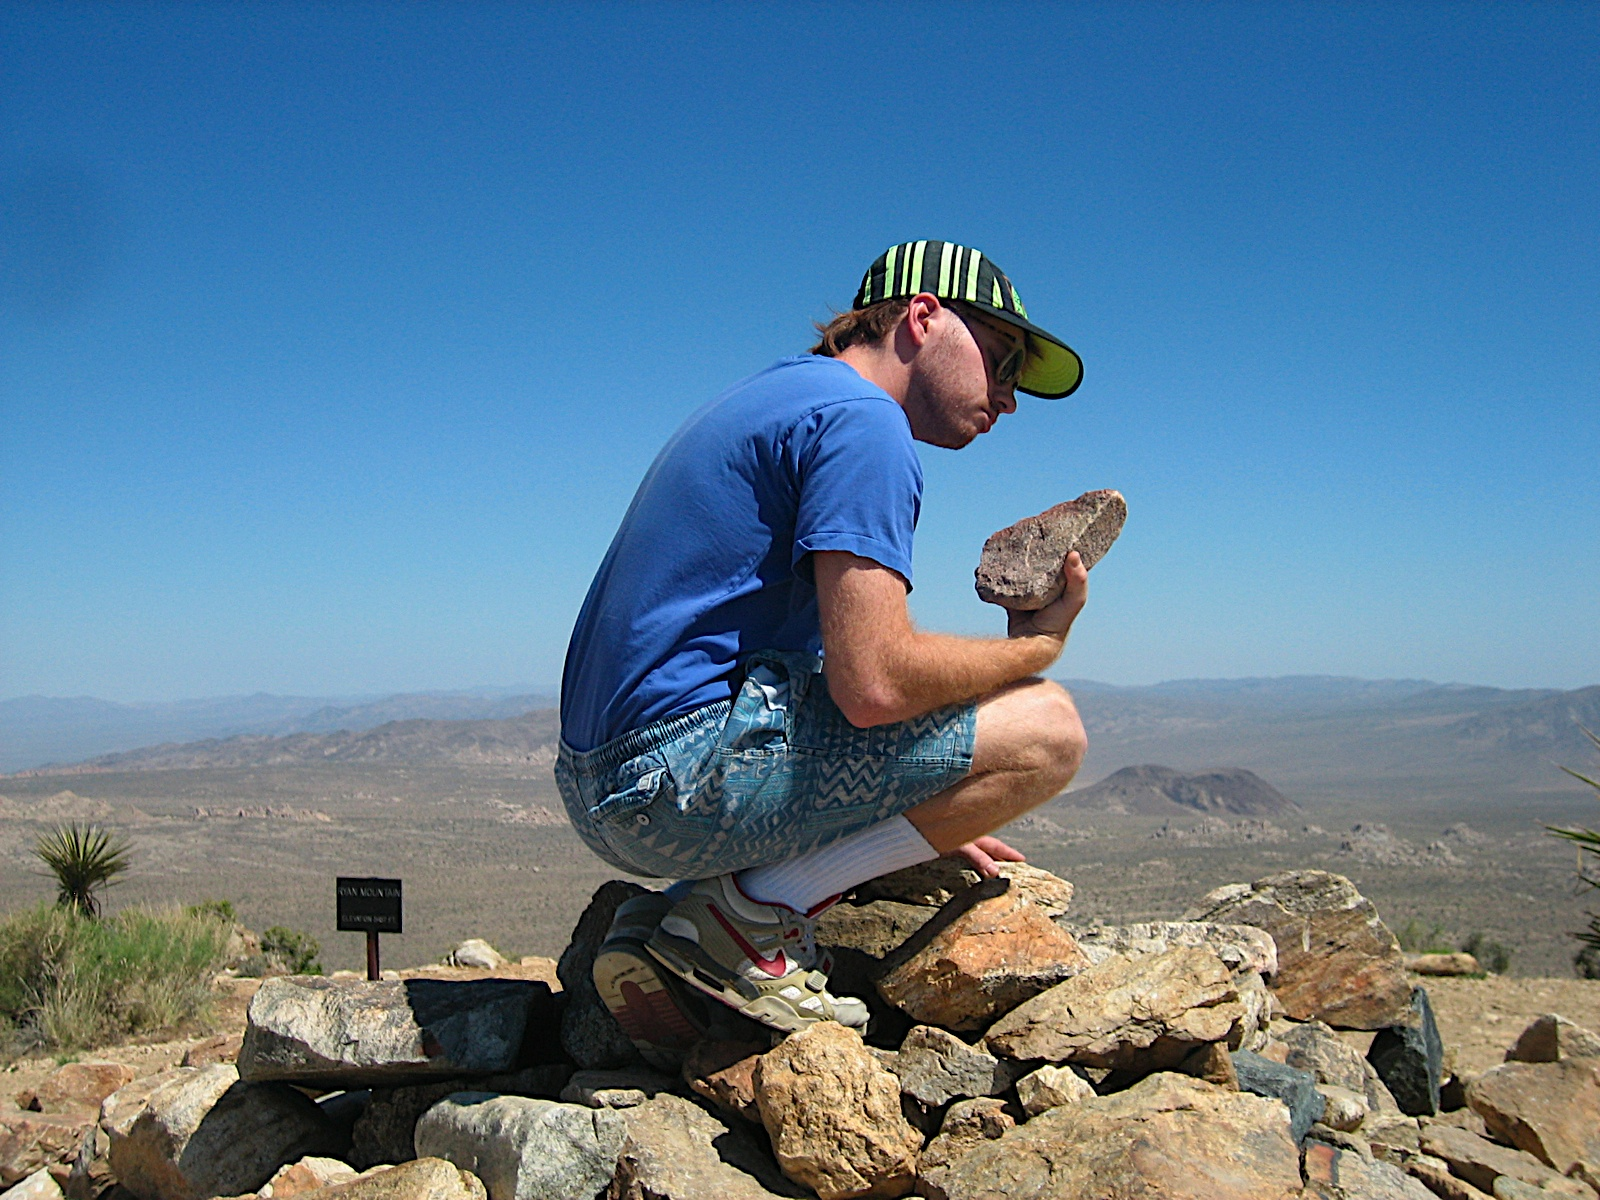 Pondering an ancient patriarchal tool during a nature quest back in 2009